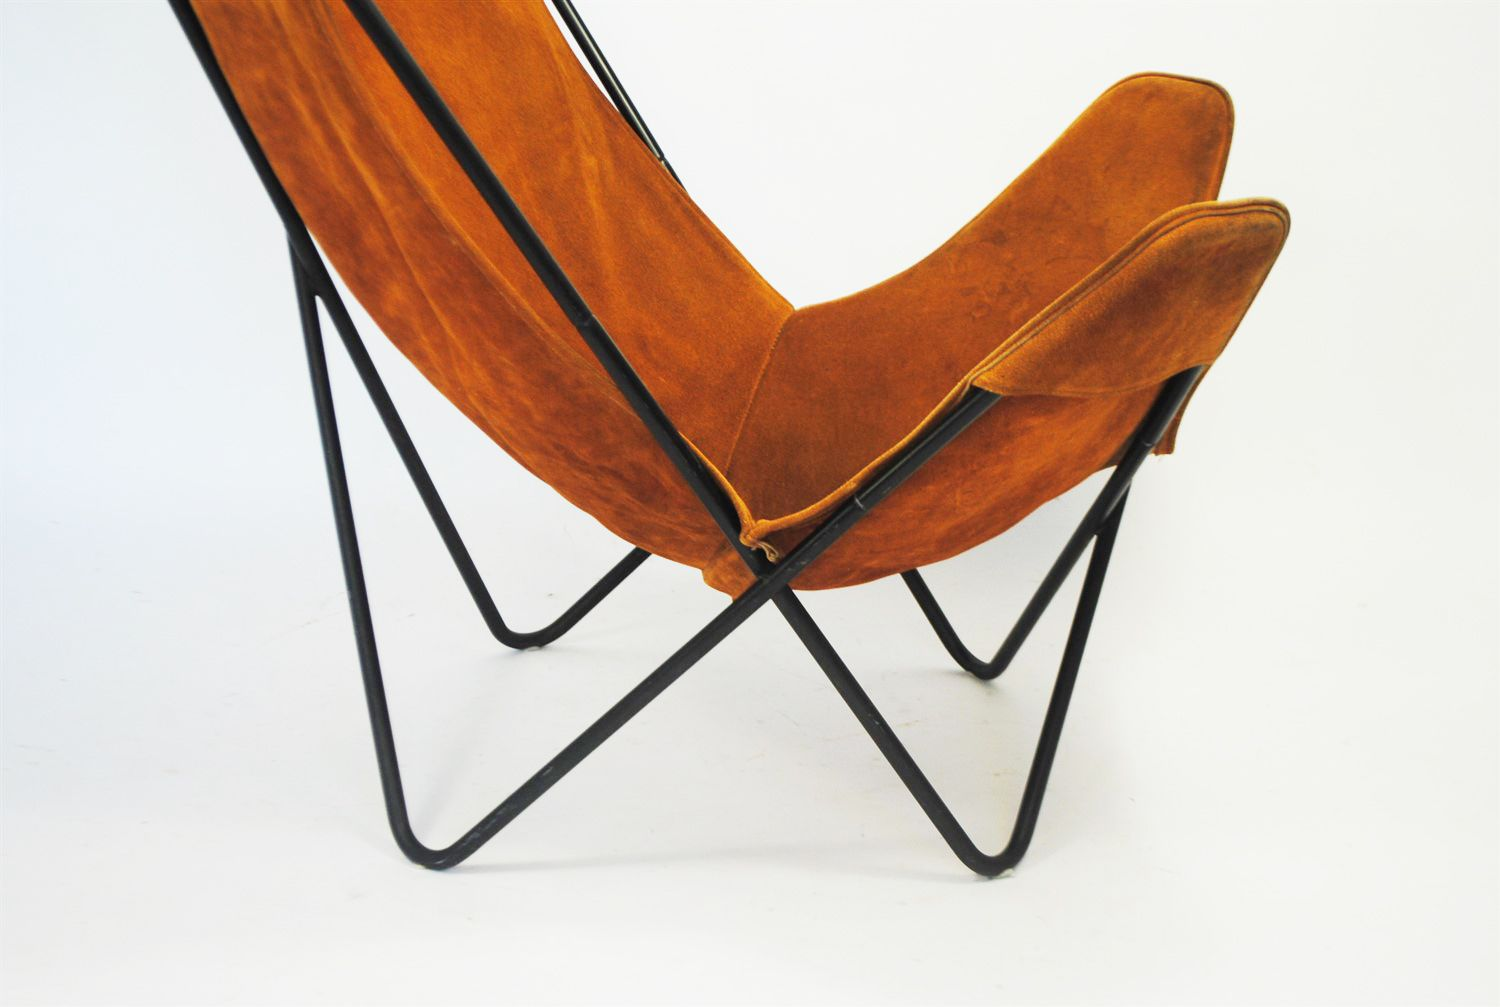 butterfly chair by jorge ferrari hardoy for knoll 1970s for sale at pamono. Black Bedroom Furniture Sets. Home Design Ideas